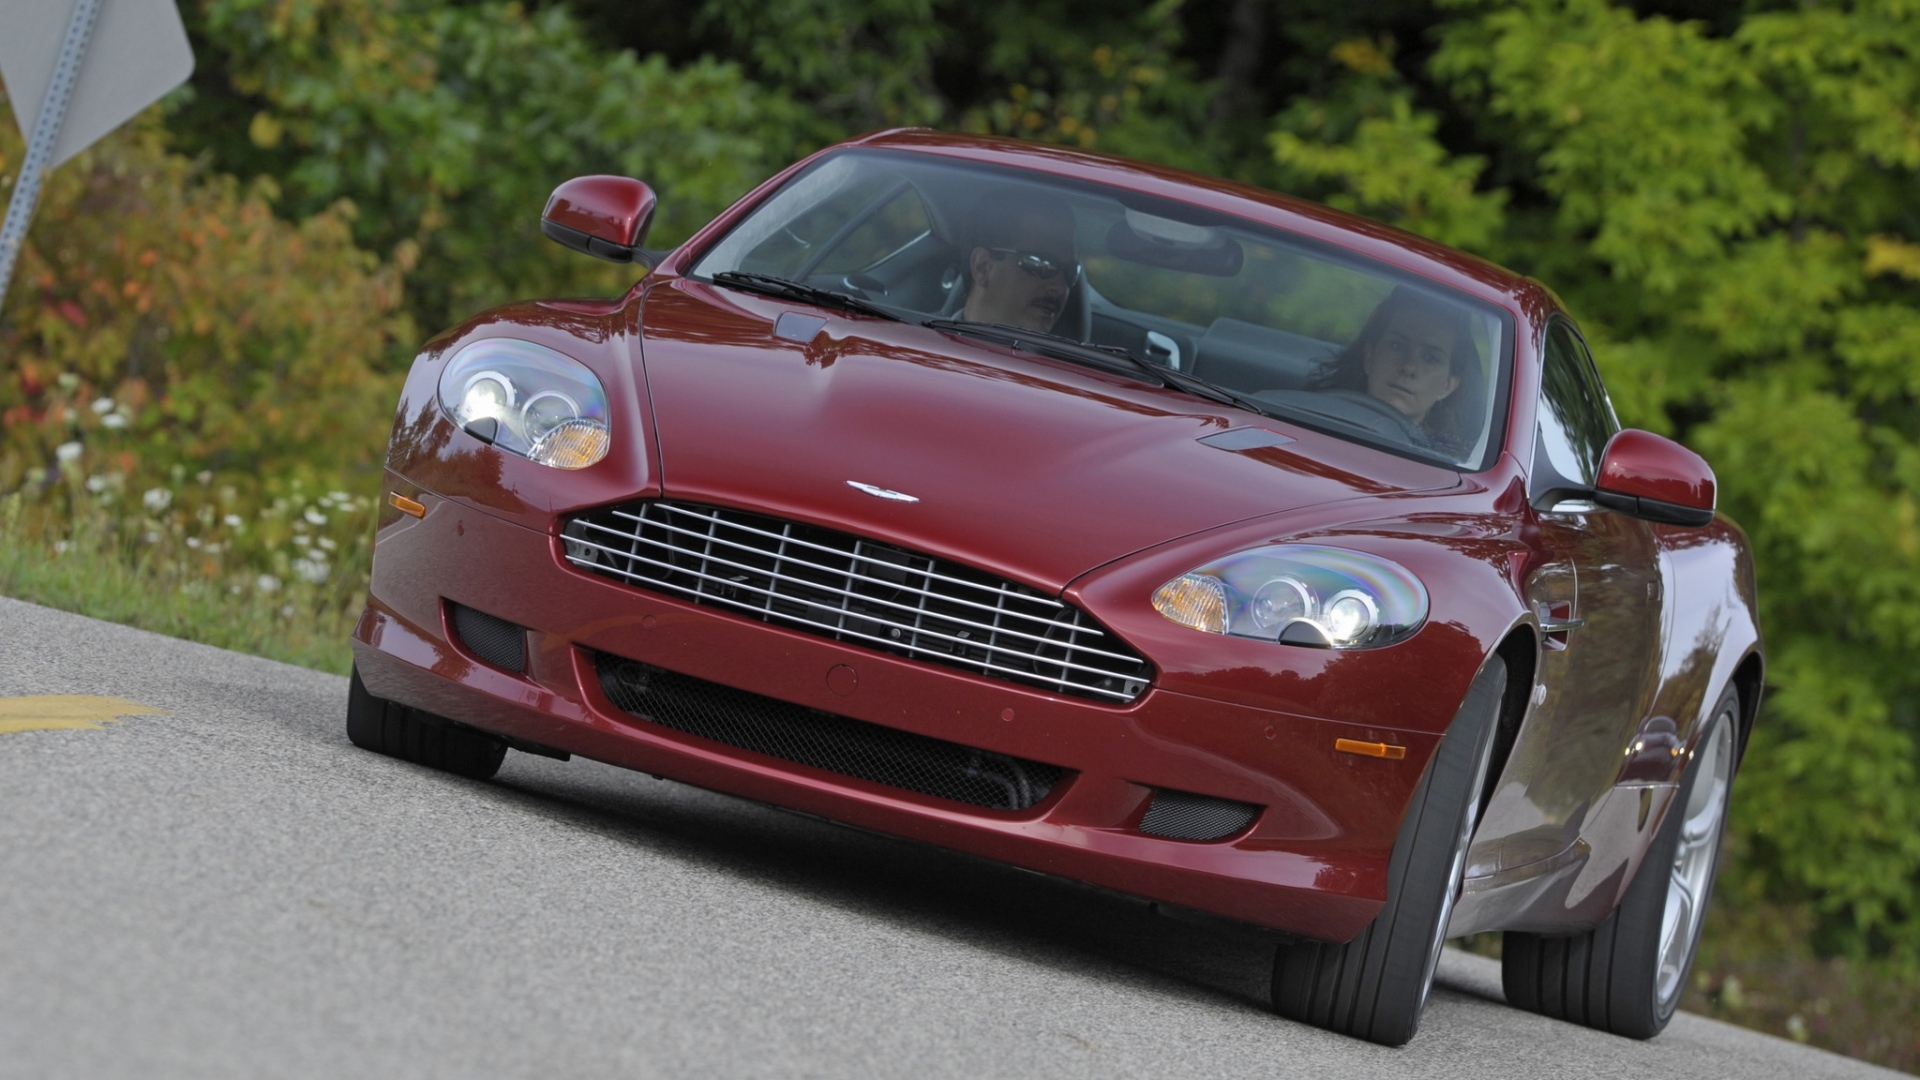 Download Wallpaper 1920x1080 Aston Martin Db9 2008 Red Front View Style Cars Nature Trees Grass Mark Full Hd 1080p Hd Background